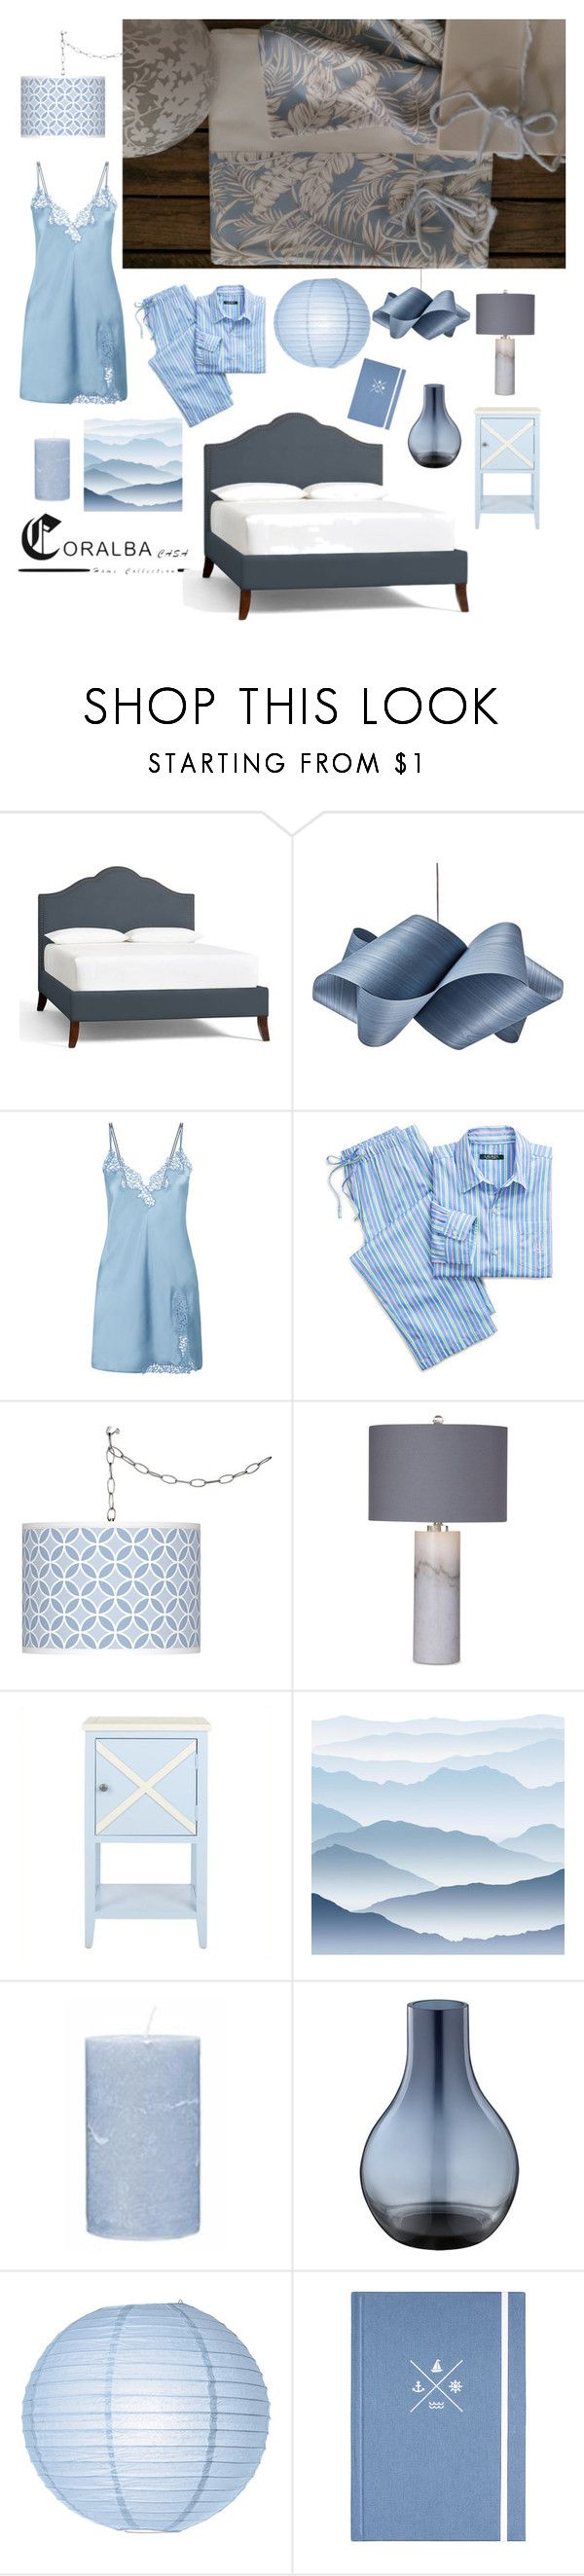 """""""#coralba"""" by silvia-magazzini ❤ liked on Polyvore featuring interior, interiors, interior design, home, home decor, interior decorating, Pottery Barn, LZF, Ralph Lauren and Giclee Glow"""